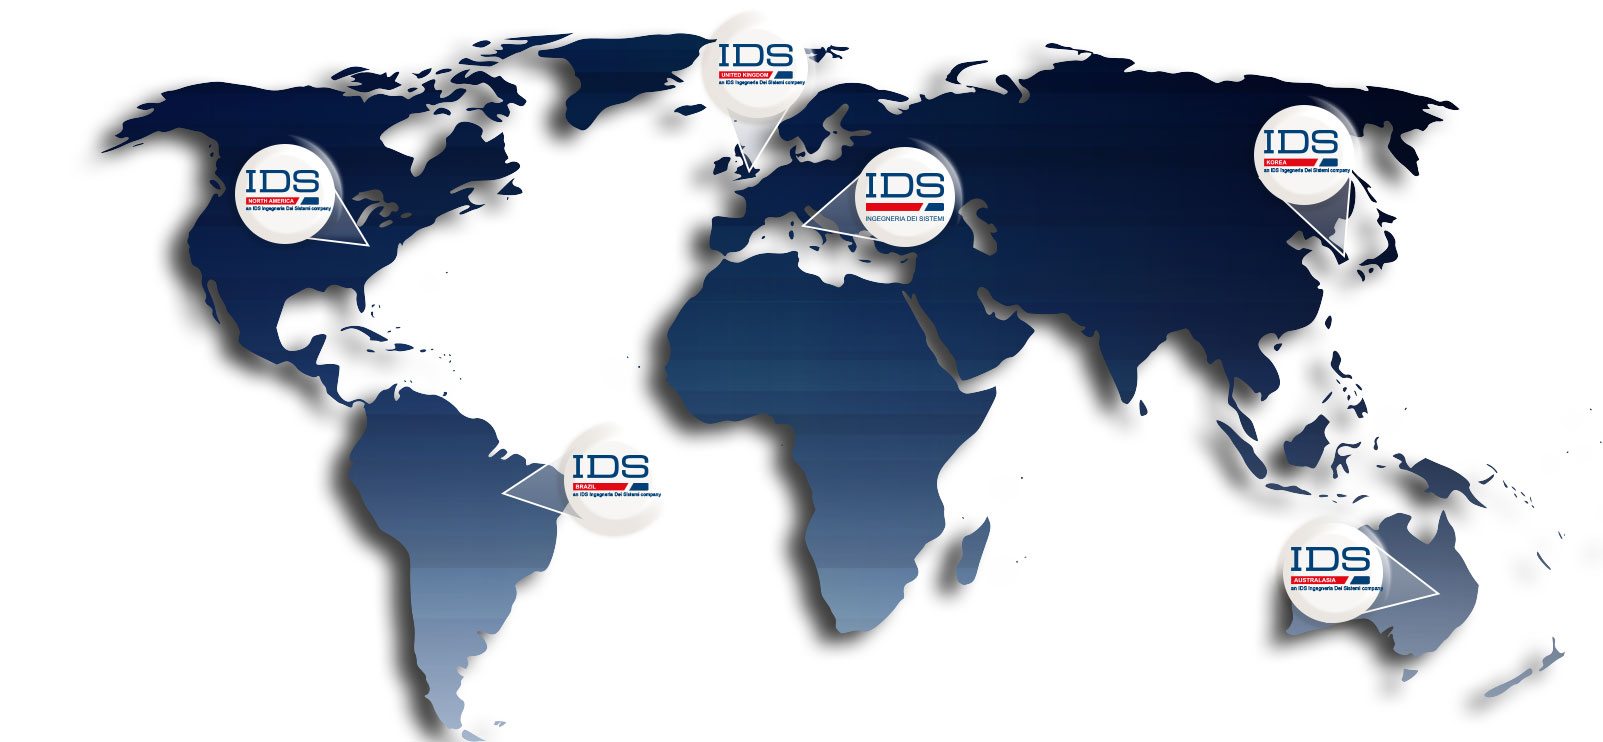 IDS Subsidiaries in the world